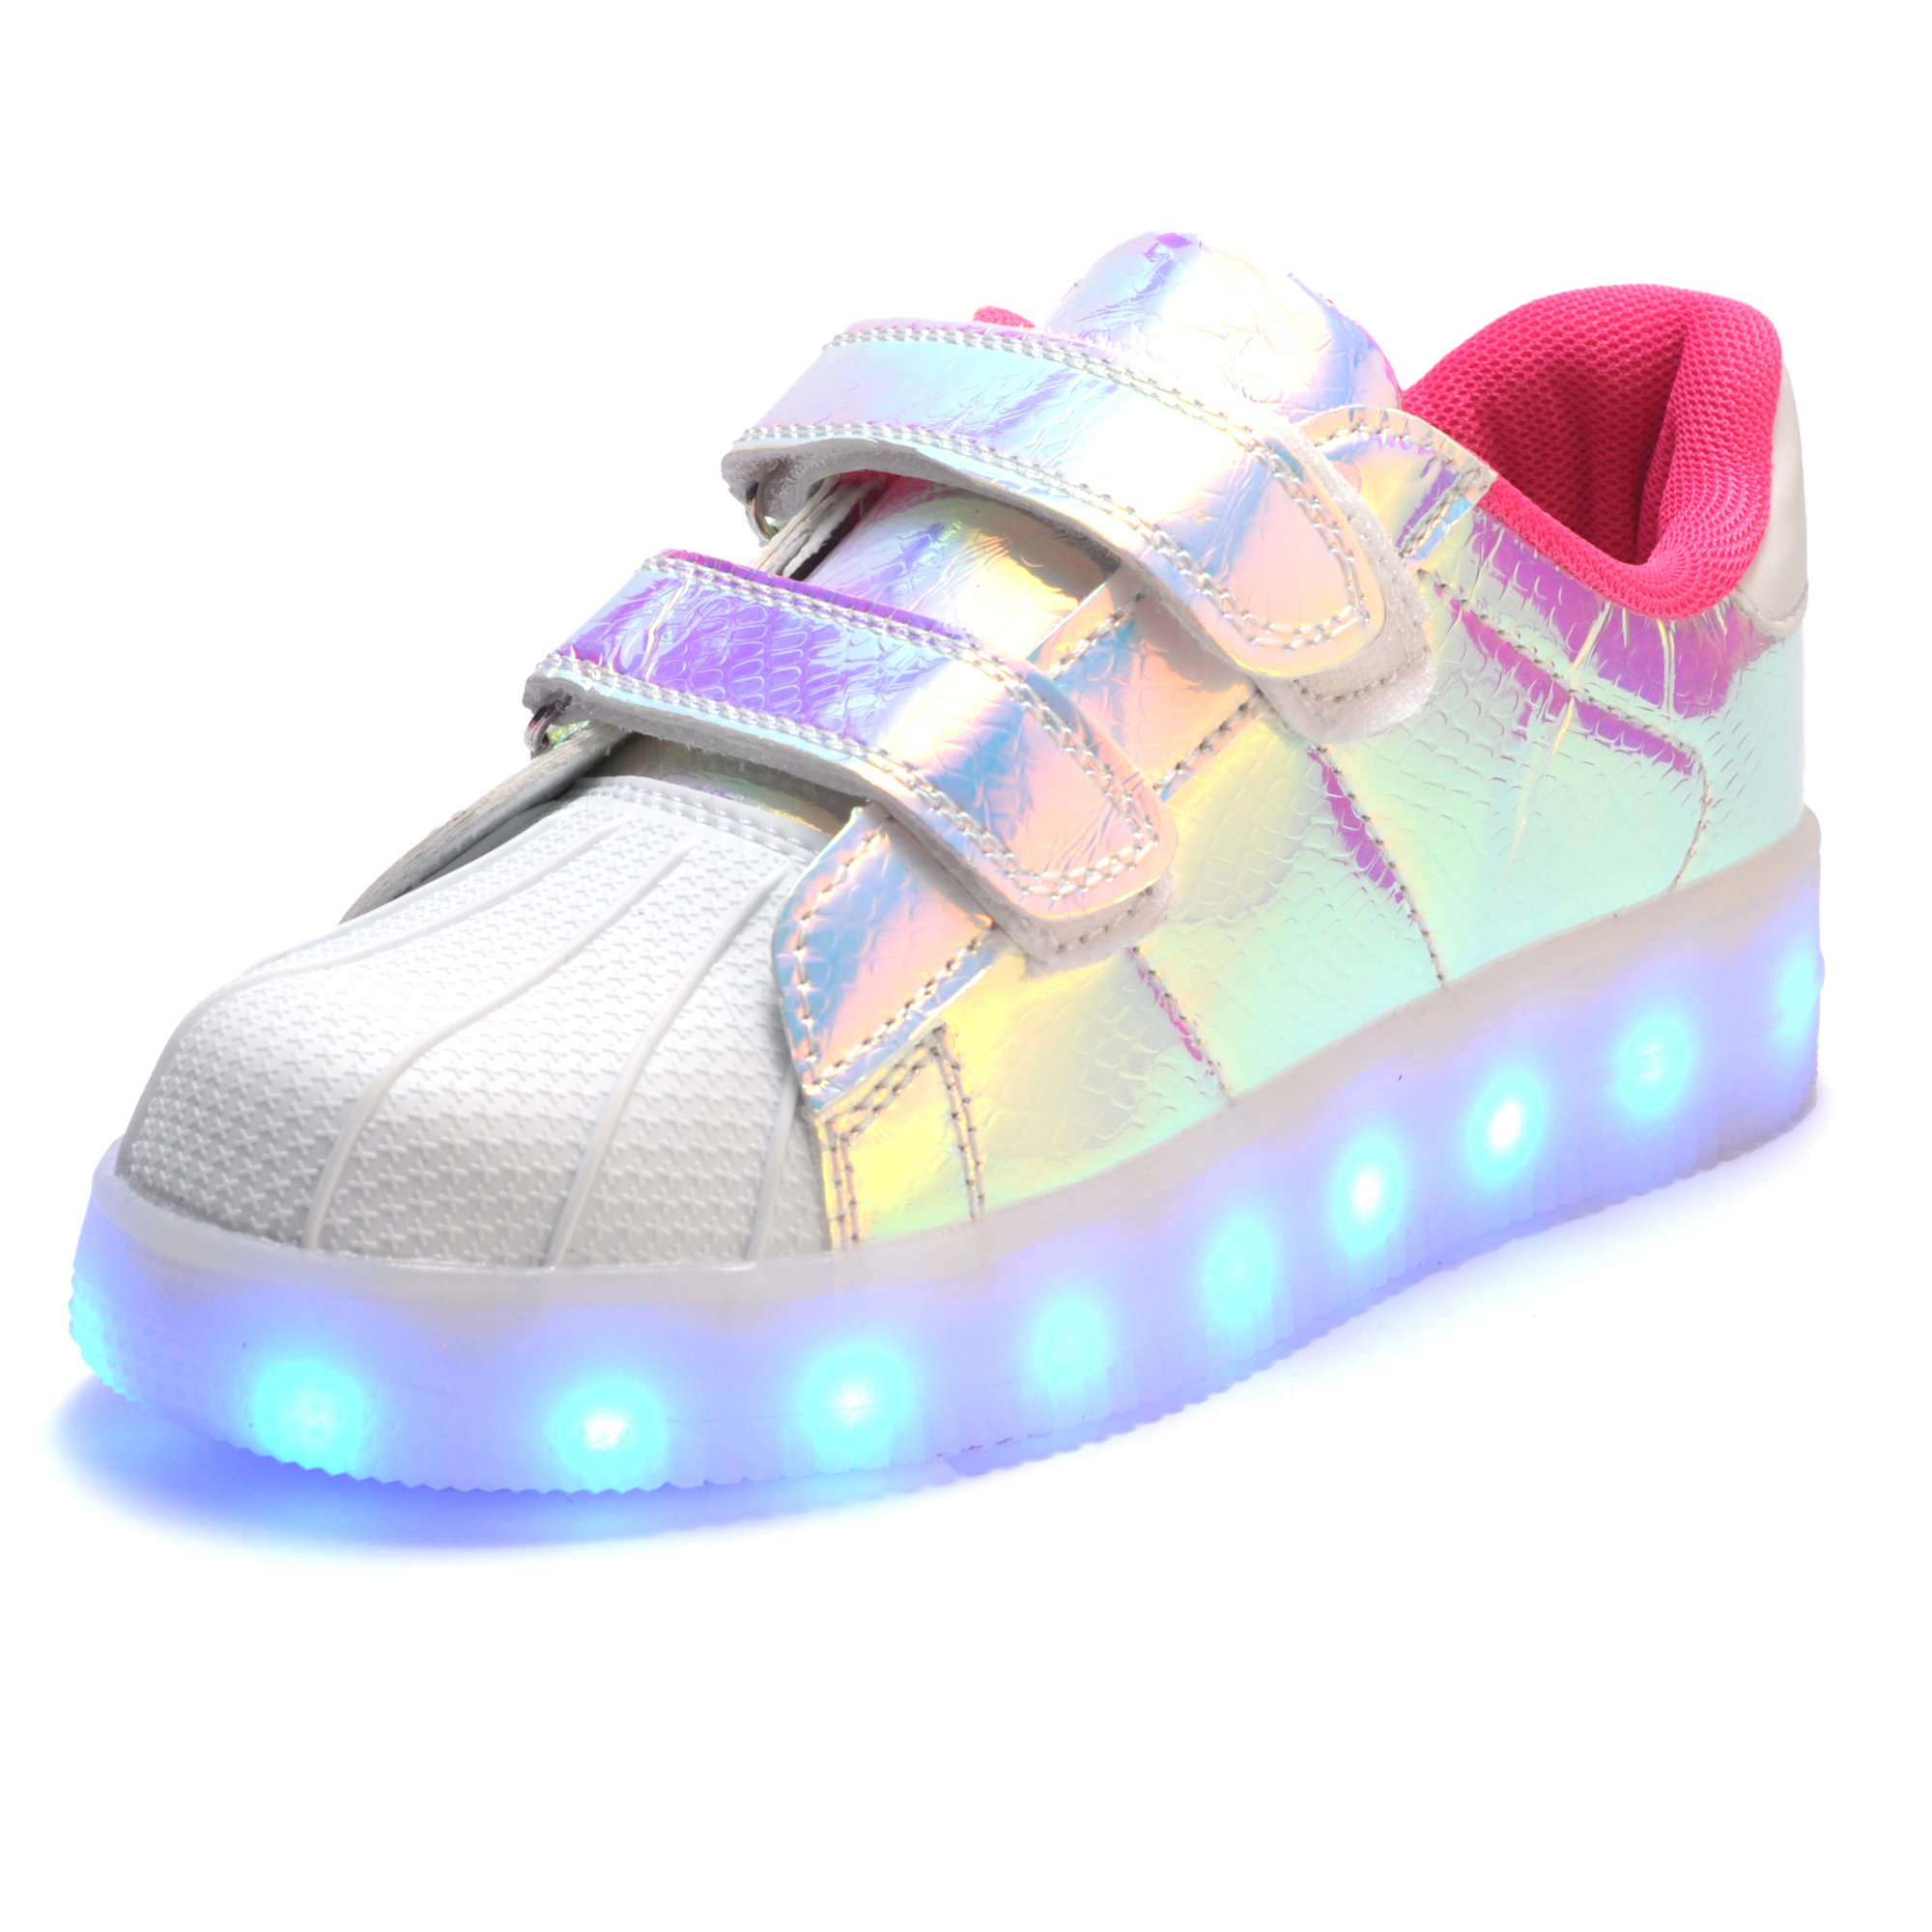 Fashion-Children-LED-light-up-Shoes-For-Kids-Sneakers-Fashion-USB-Charging-Luminous-Lighted-Boy-Girl-Sports-Casual-Enfant-Shoes-2